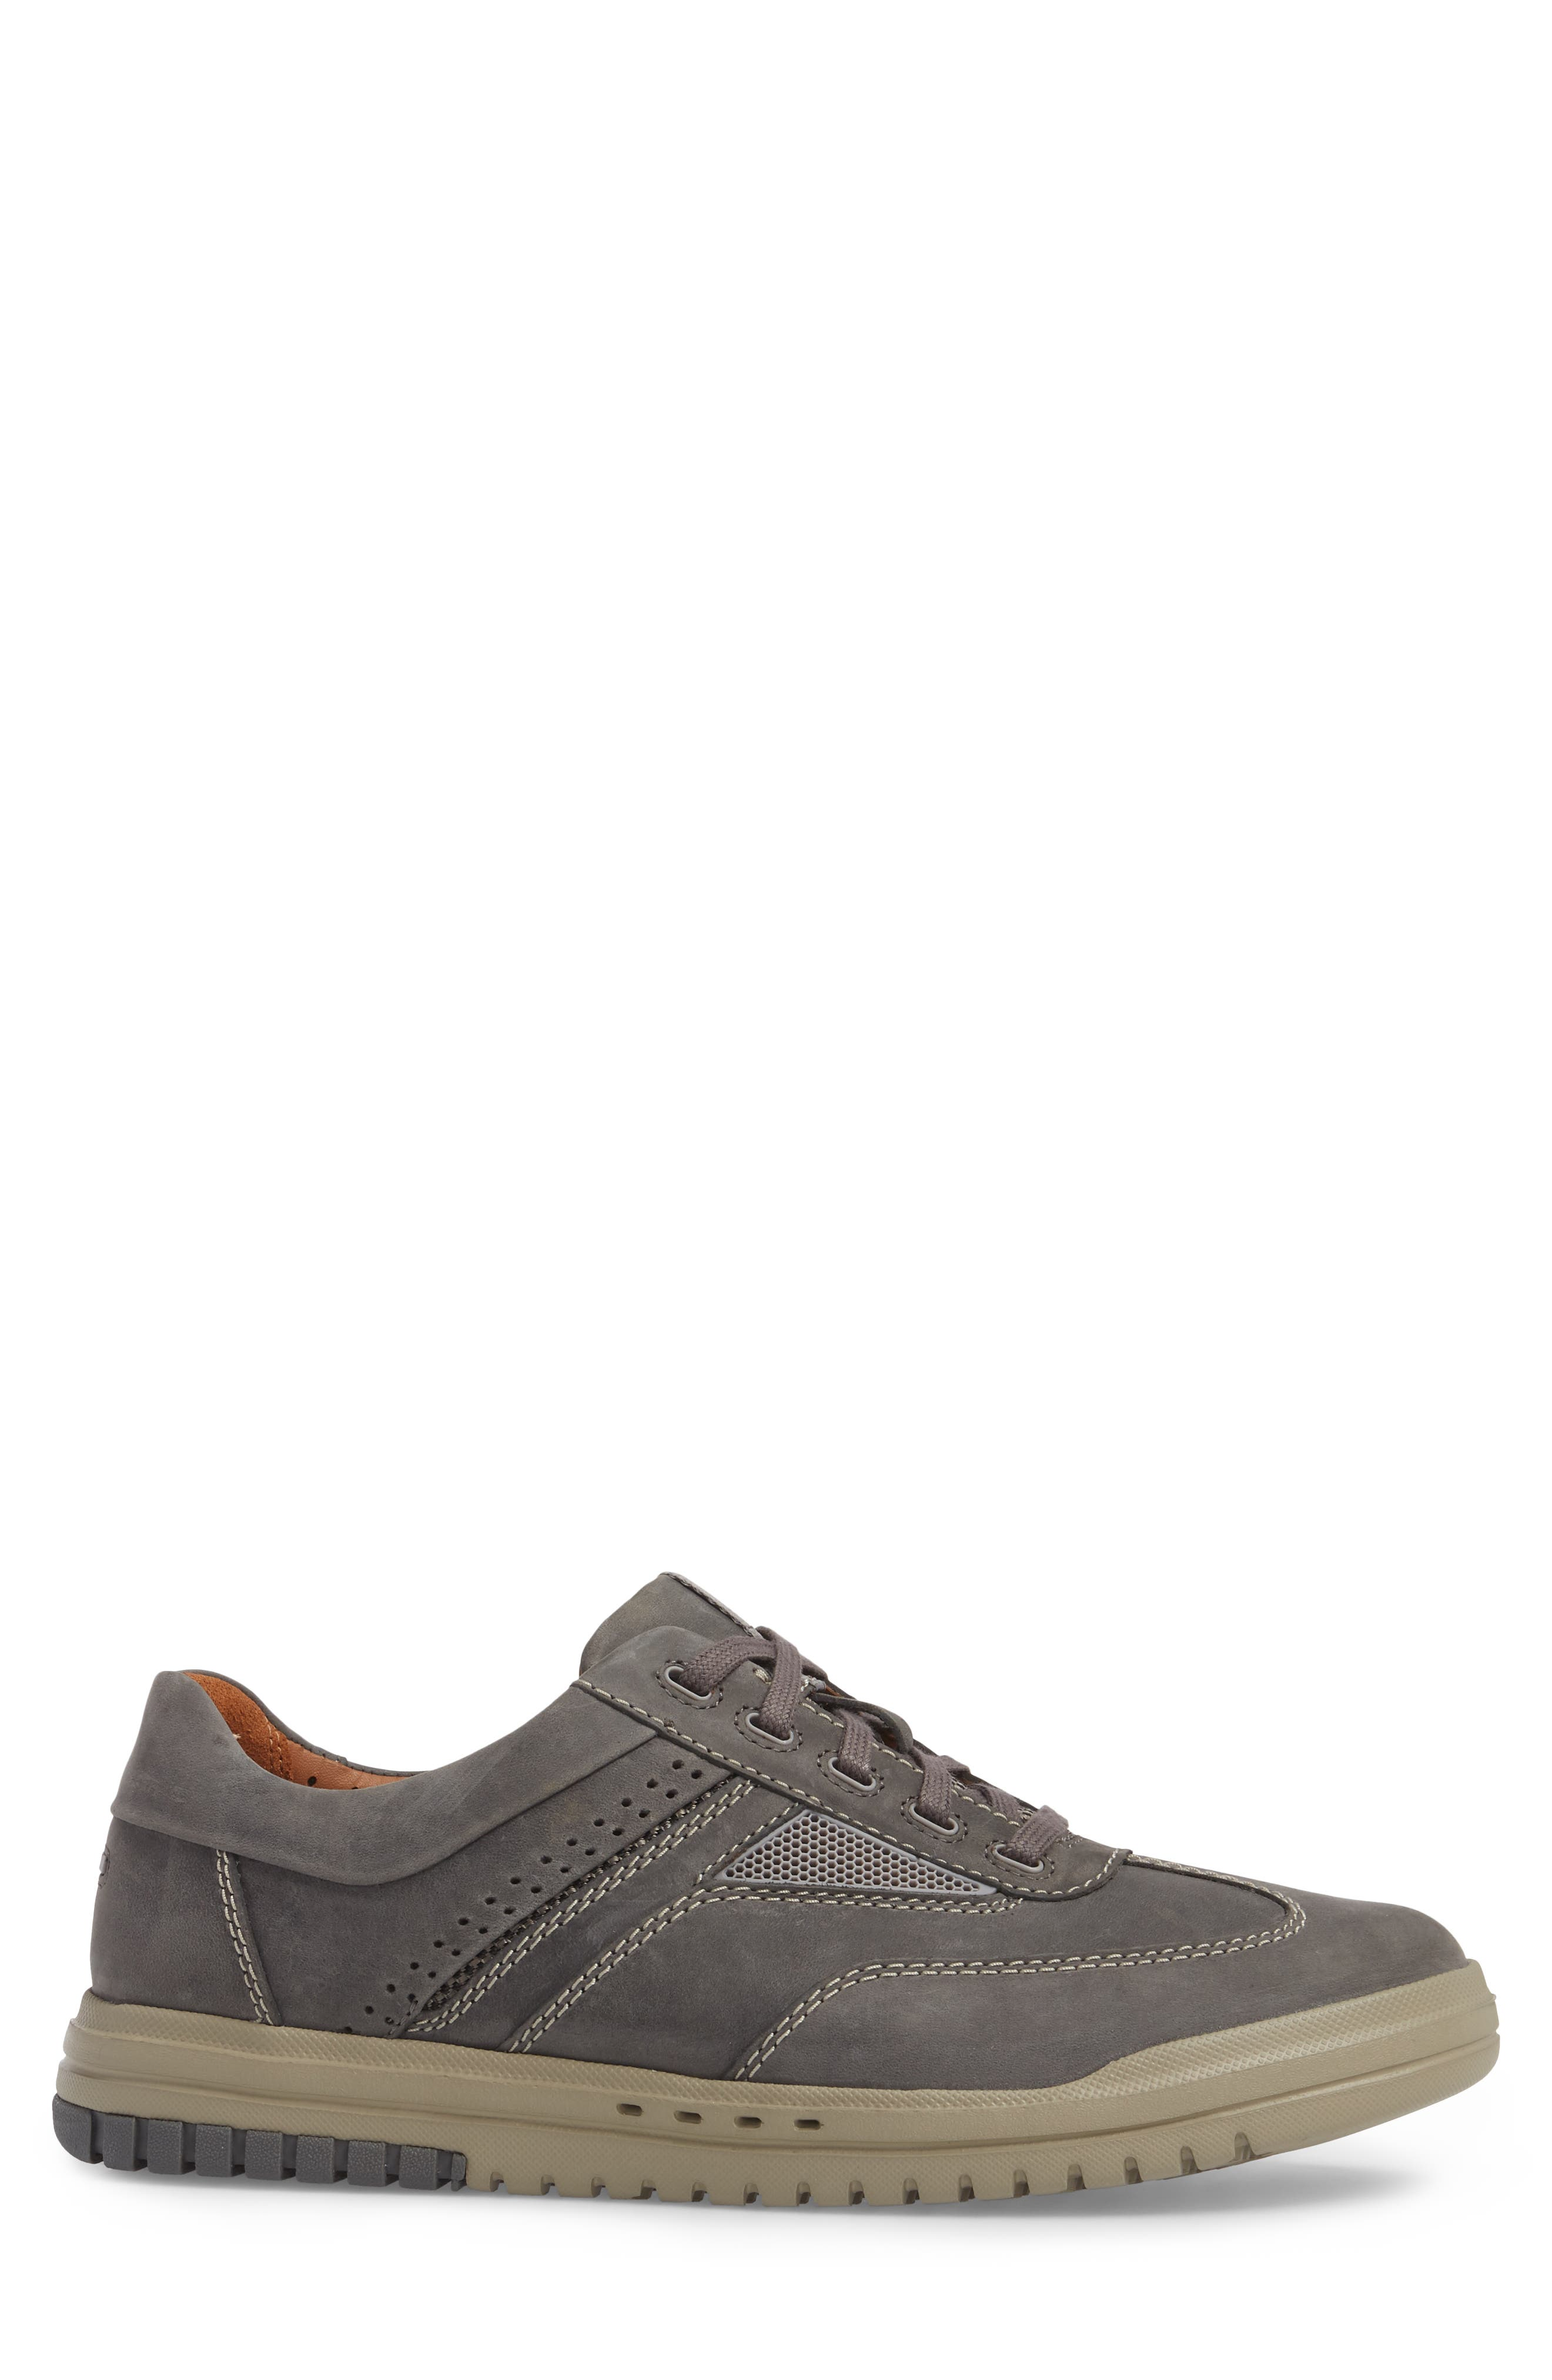 Originals Unrhombus Low Top Sneaker,                             Alternate thumbnail 3, color,                             021